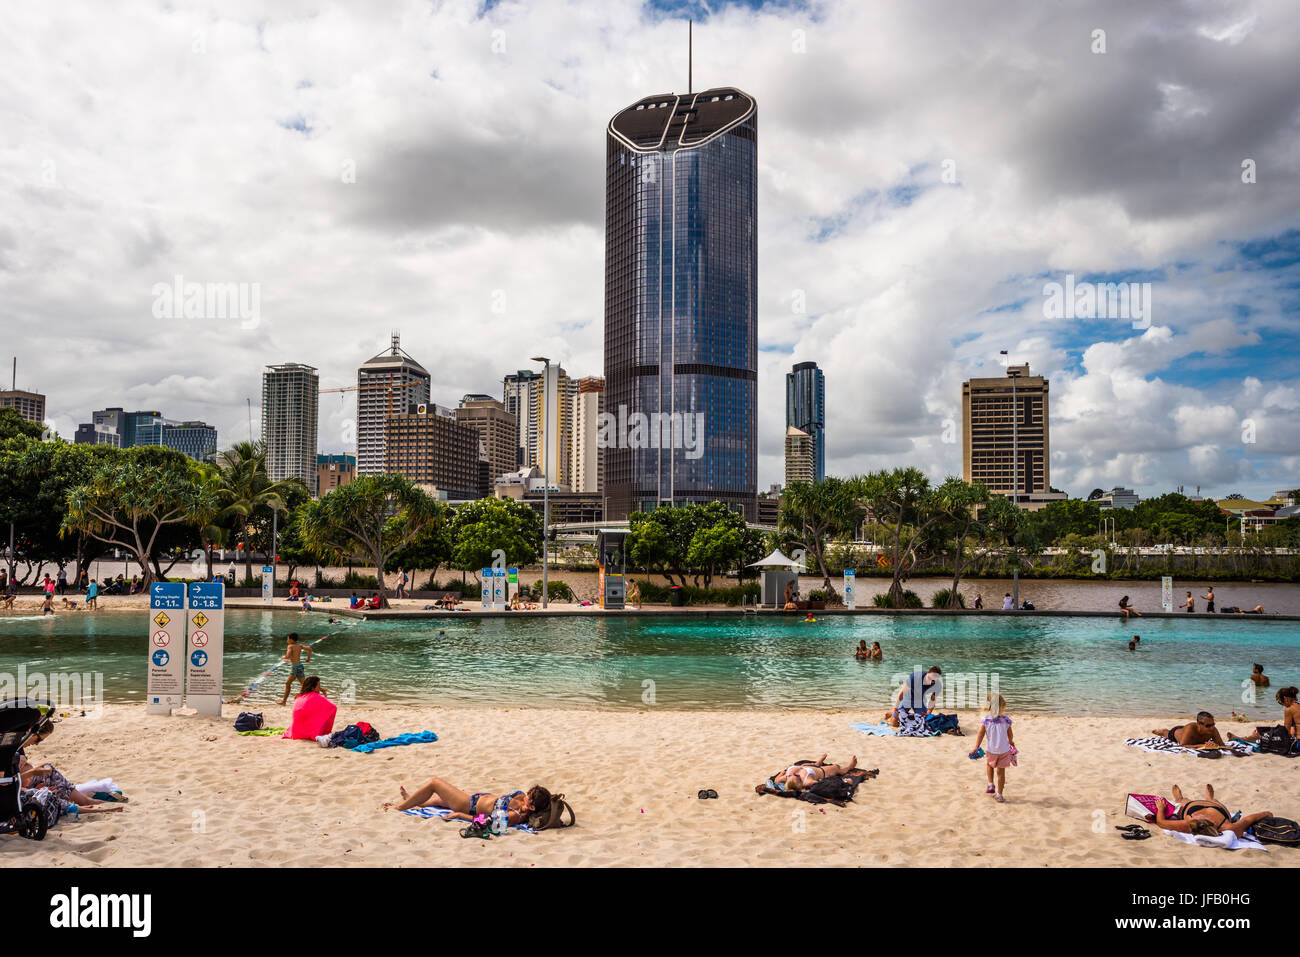 Streets Beach lagoon in the South Bank Parklands with city skyline in background. Brisbane, Queensland, Australia - Stock Image